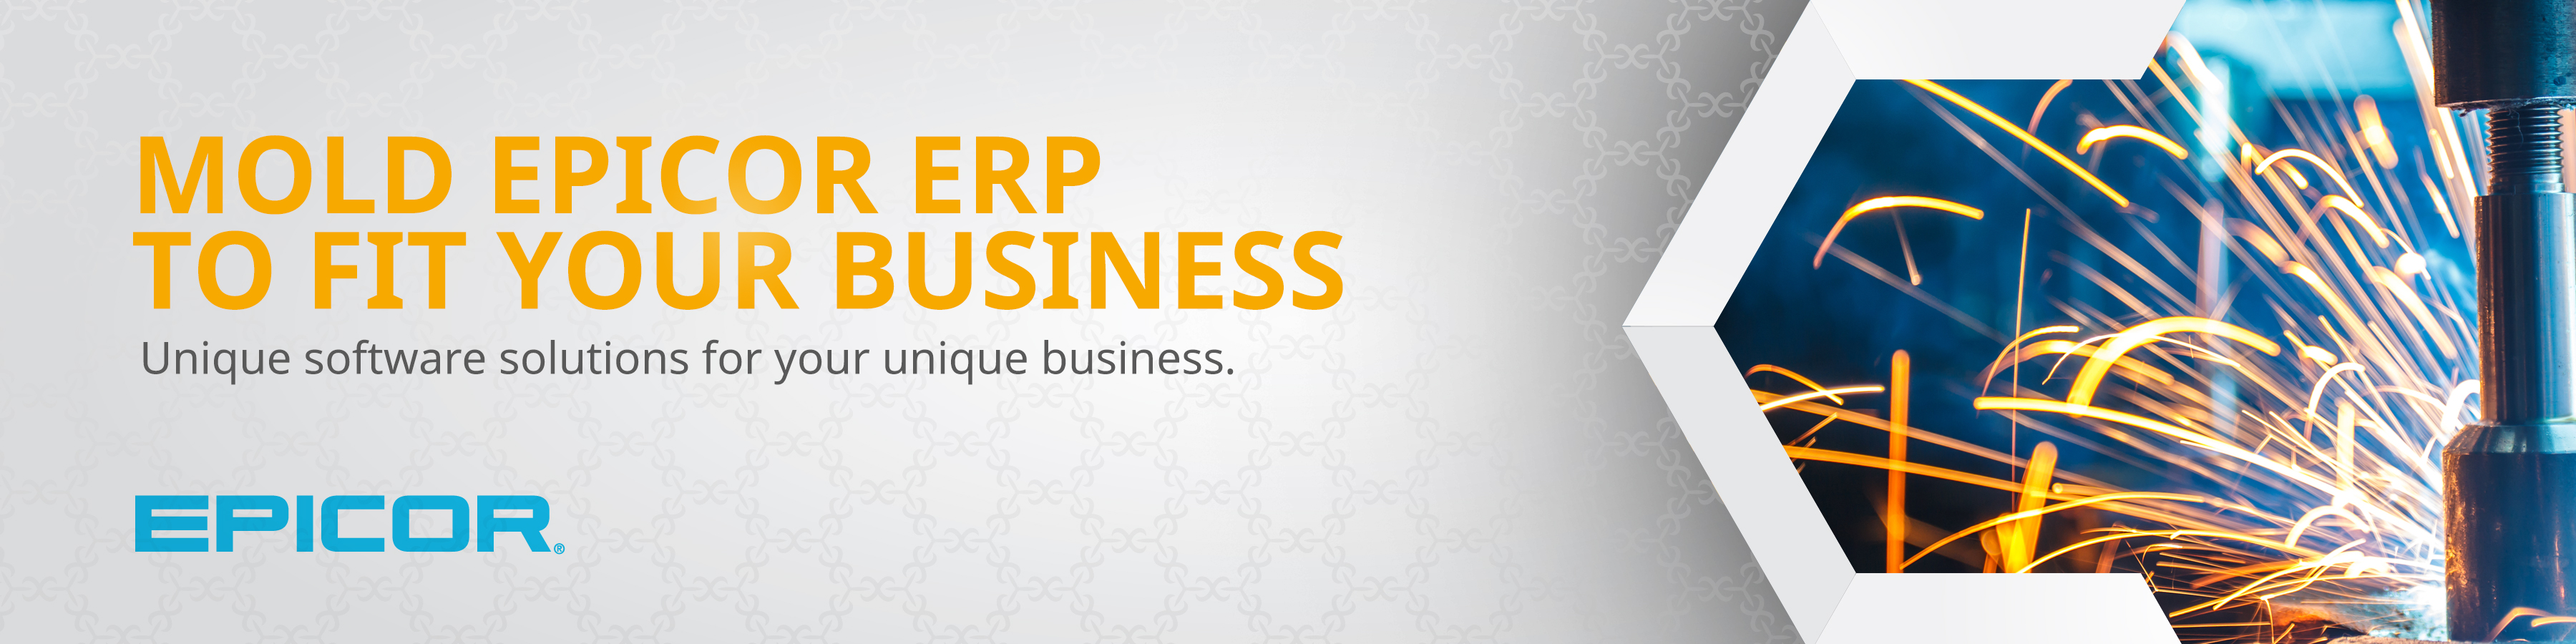 Mold ERP To Fit Your Business